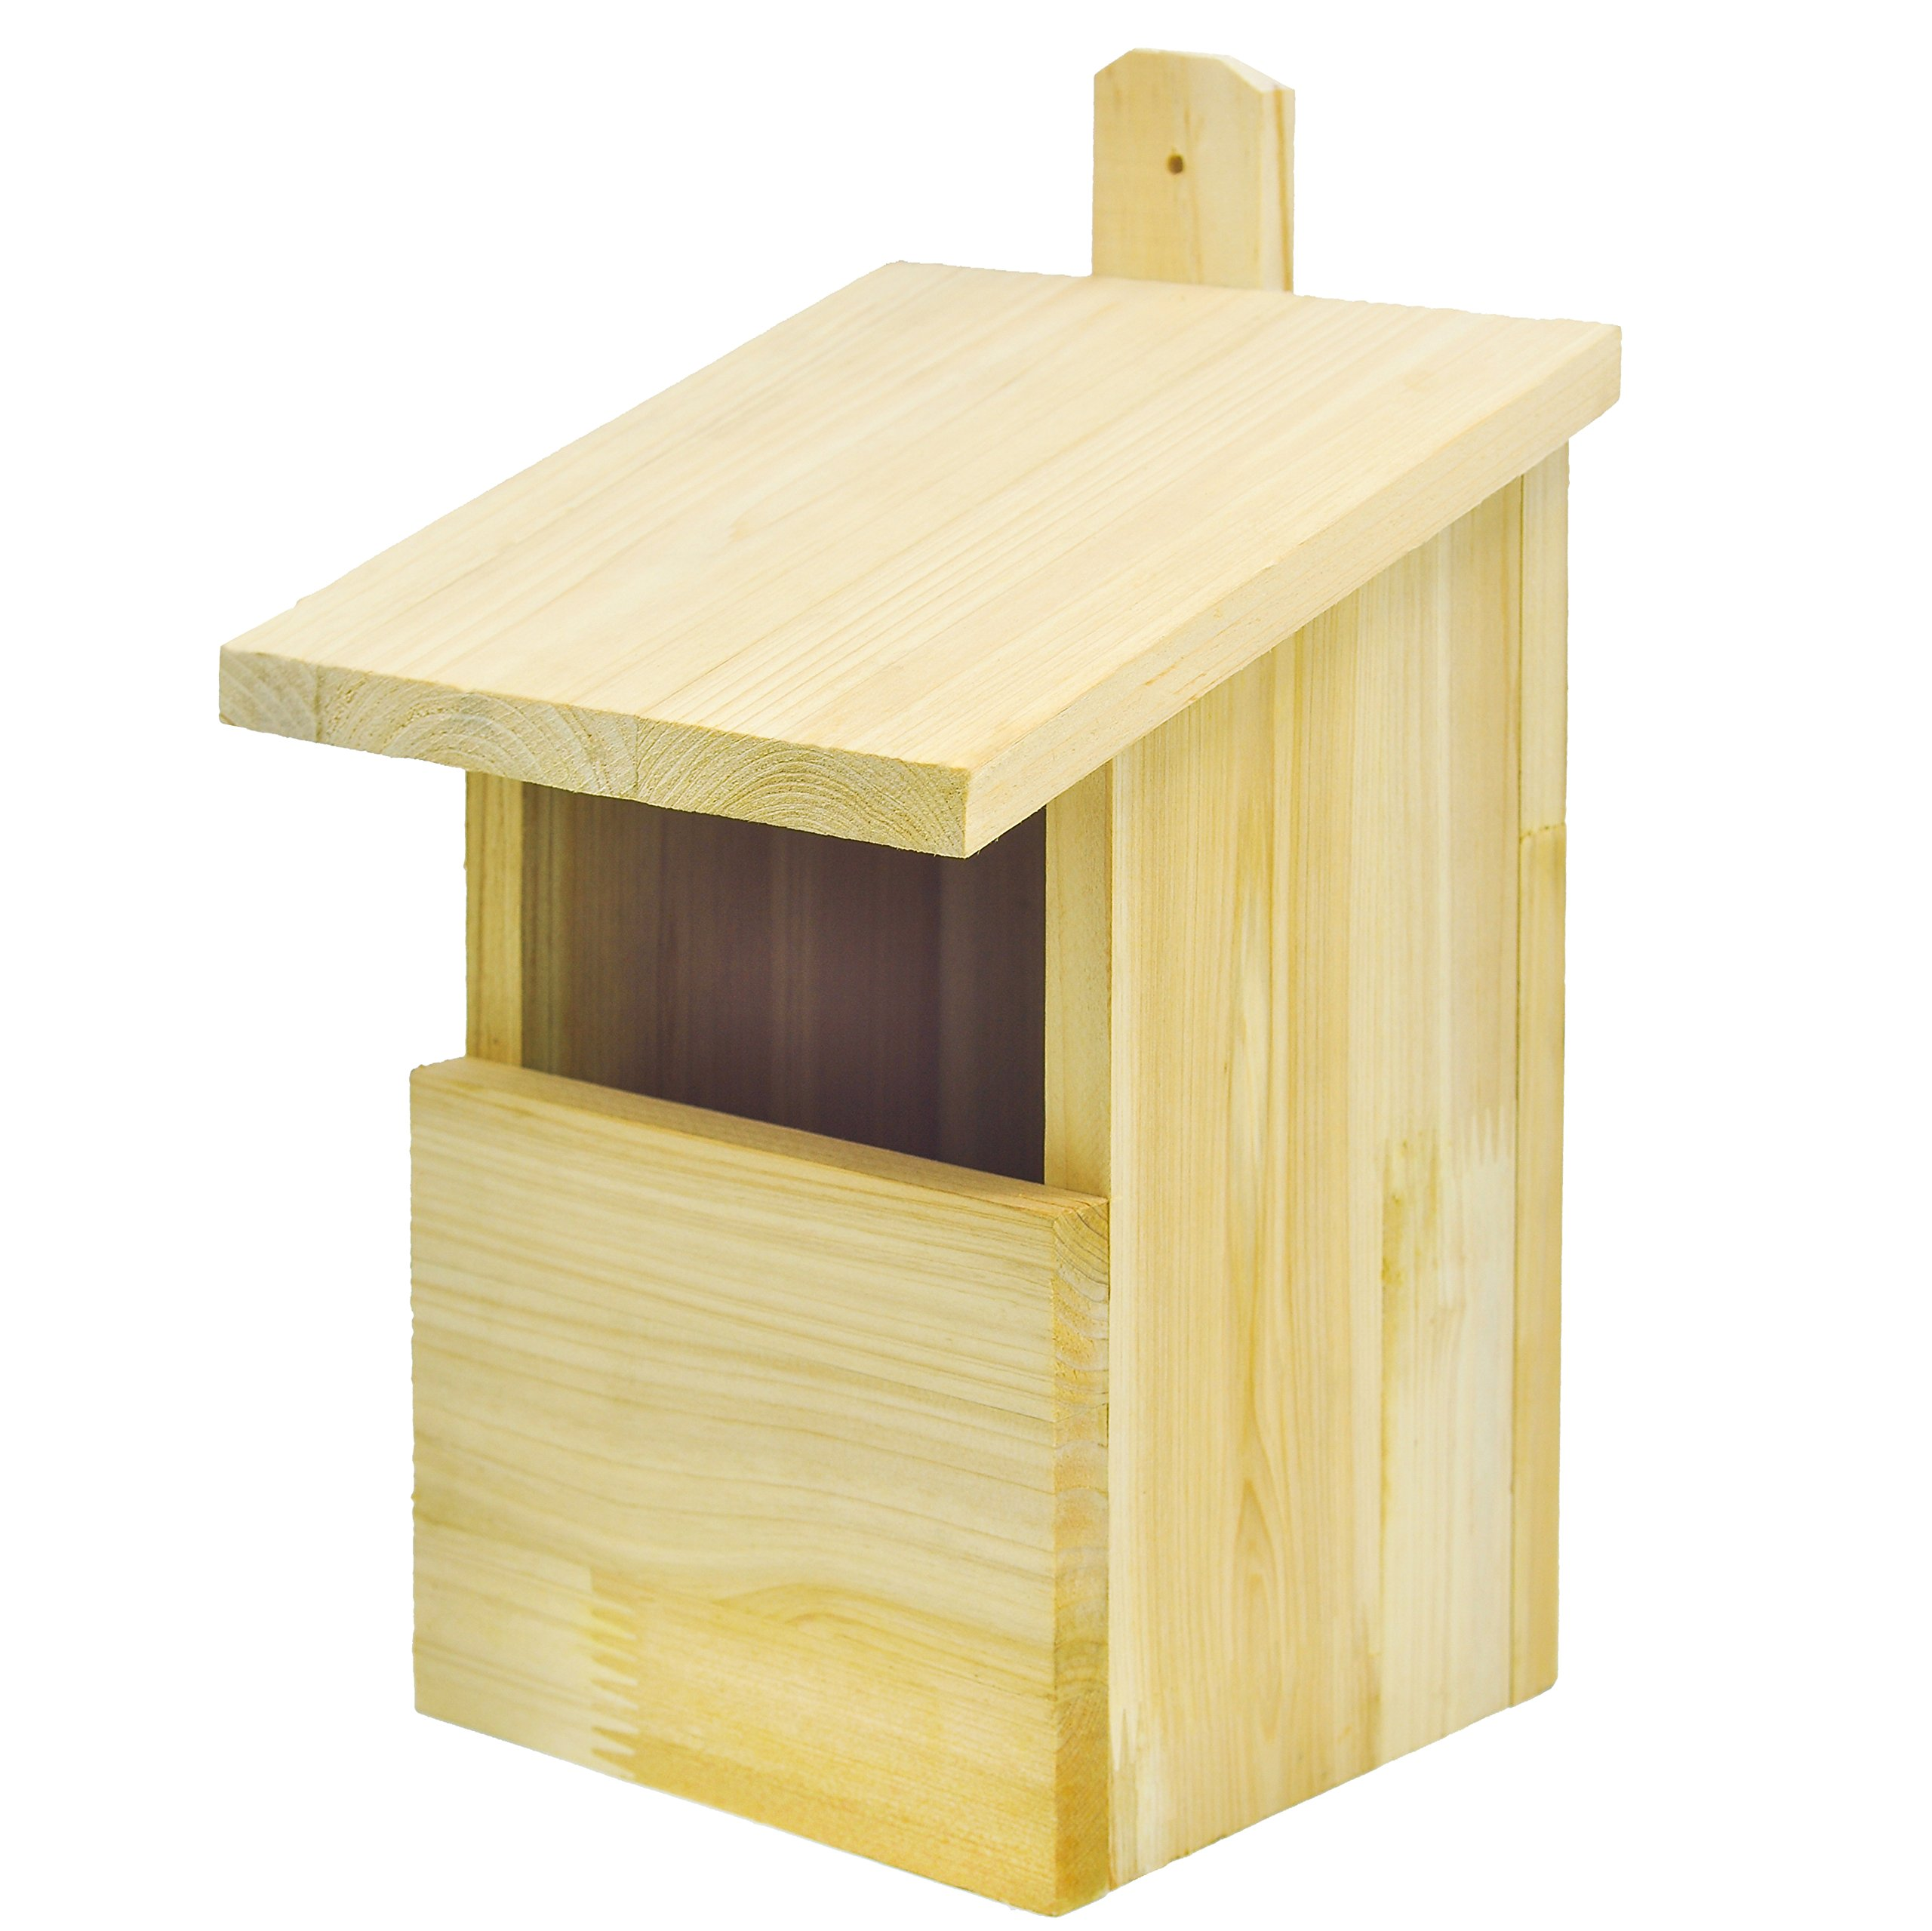 Niteangel Bluebird & Tree Swallow Bird House, 8.2×9.6×6.2 inch